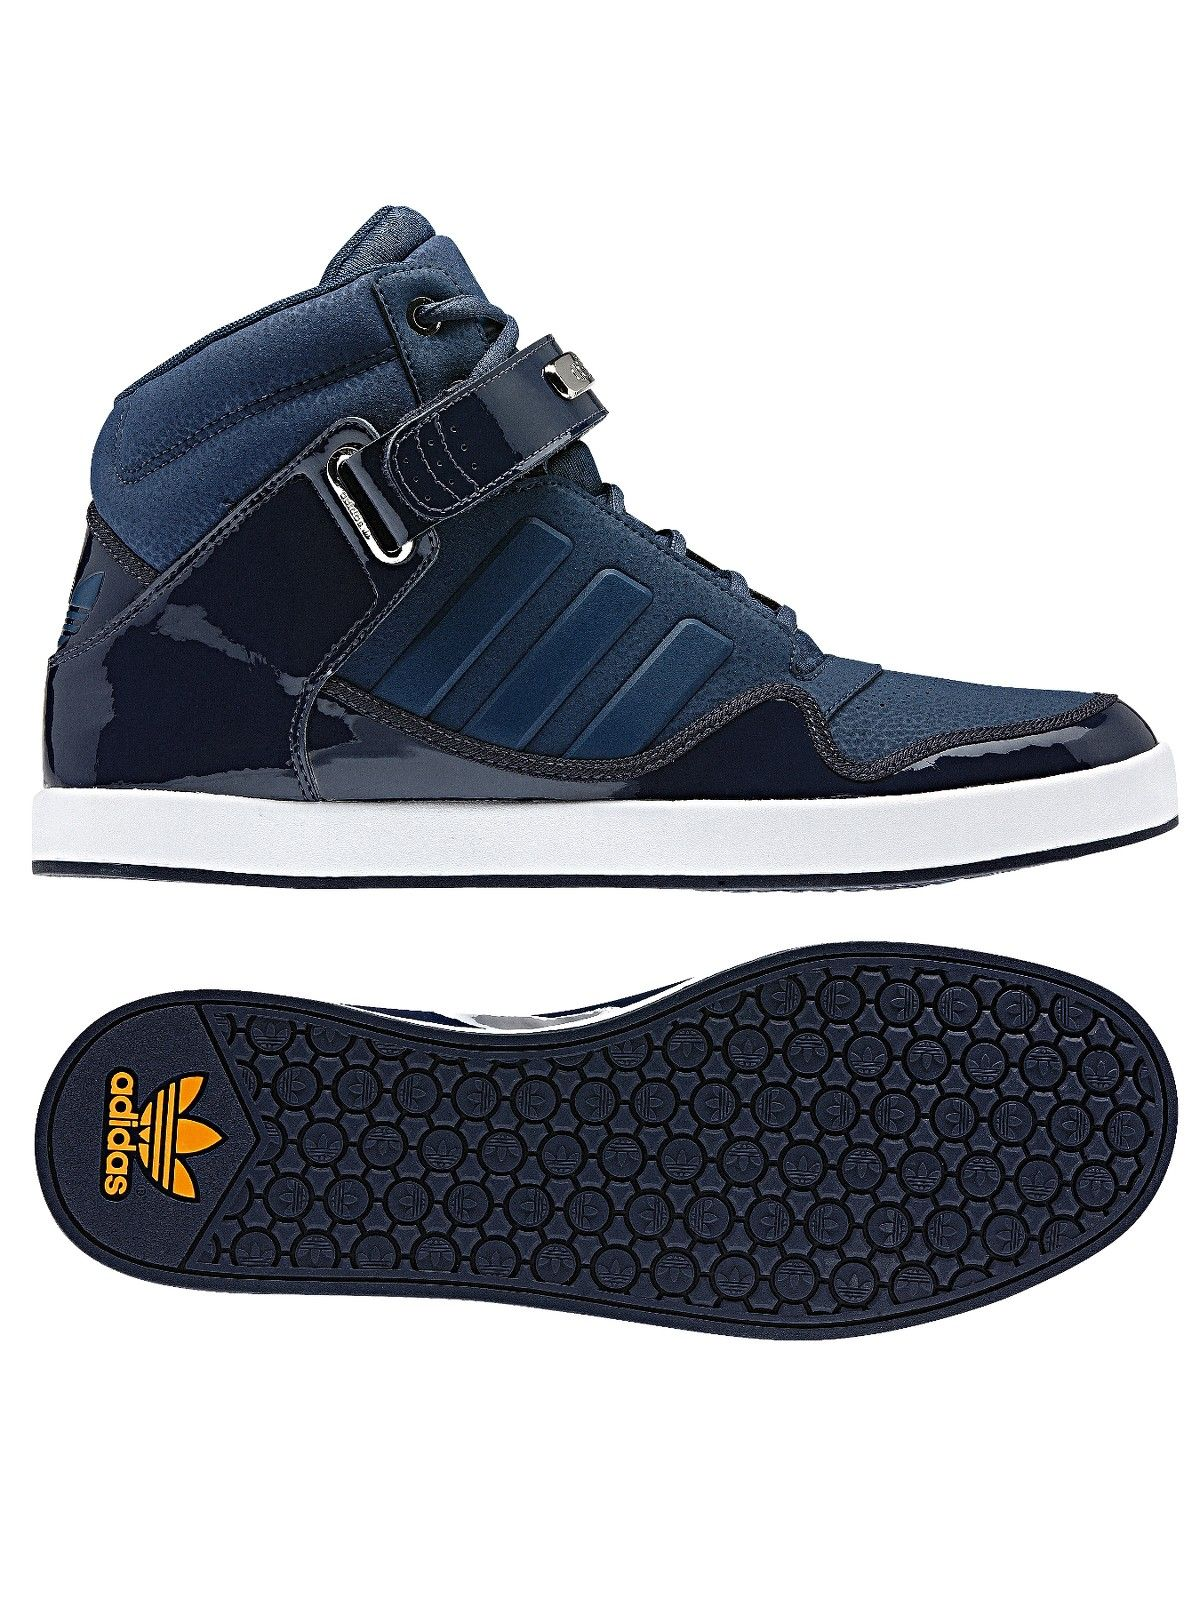 separation shoes bb77b 37e3b adidas Originals adi-rise 2.0 mens Hi Top Trainers   Very.co.uk